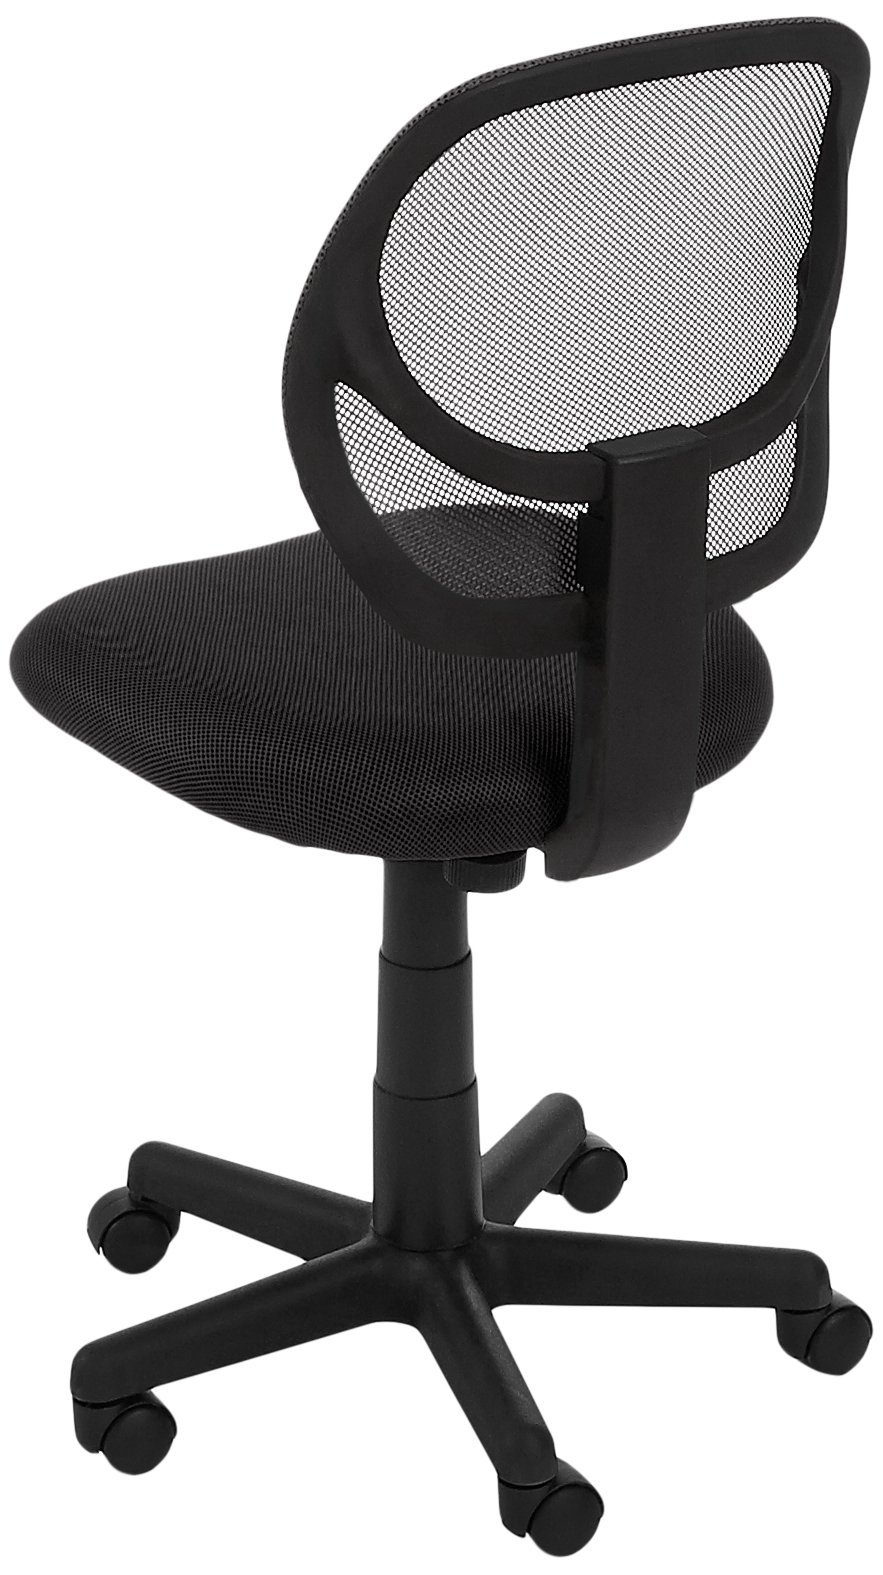 AmazonBasics Low-Back Computer Task/Desk Chair with Swivel Casters - Black by AmazonBasics (Image #6)